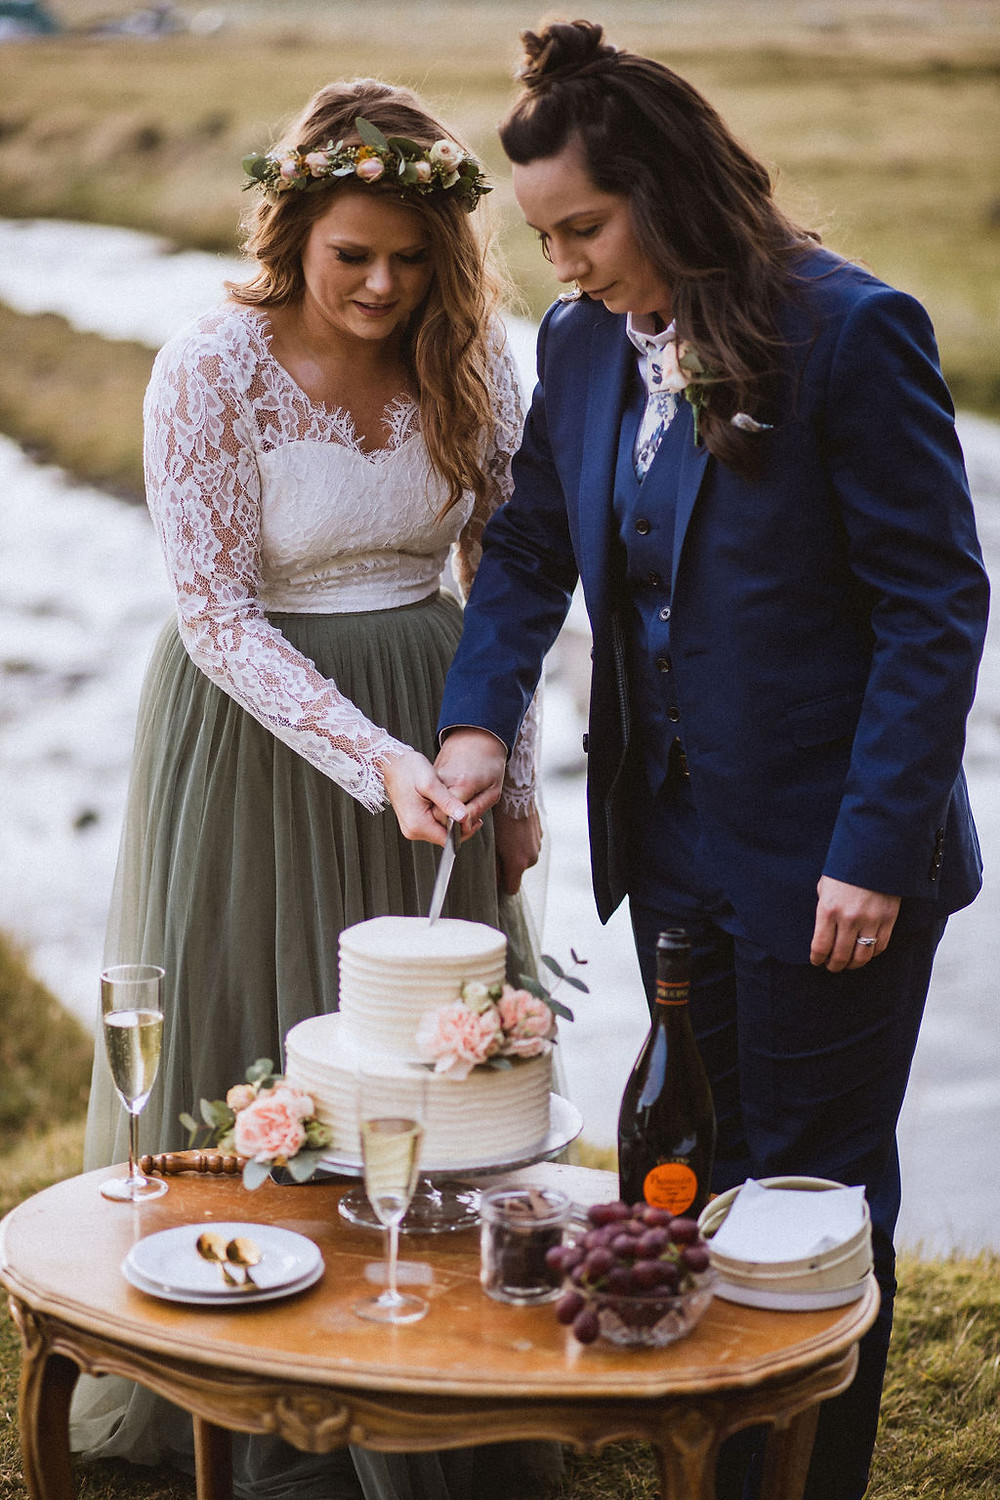 Lesbian elopement in Iceland planned by Pink Iceland wedding planner